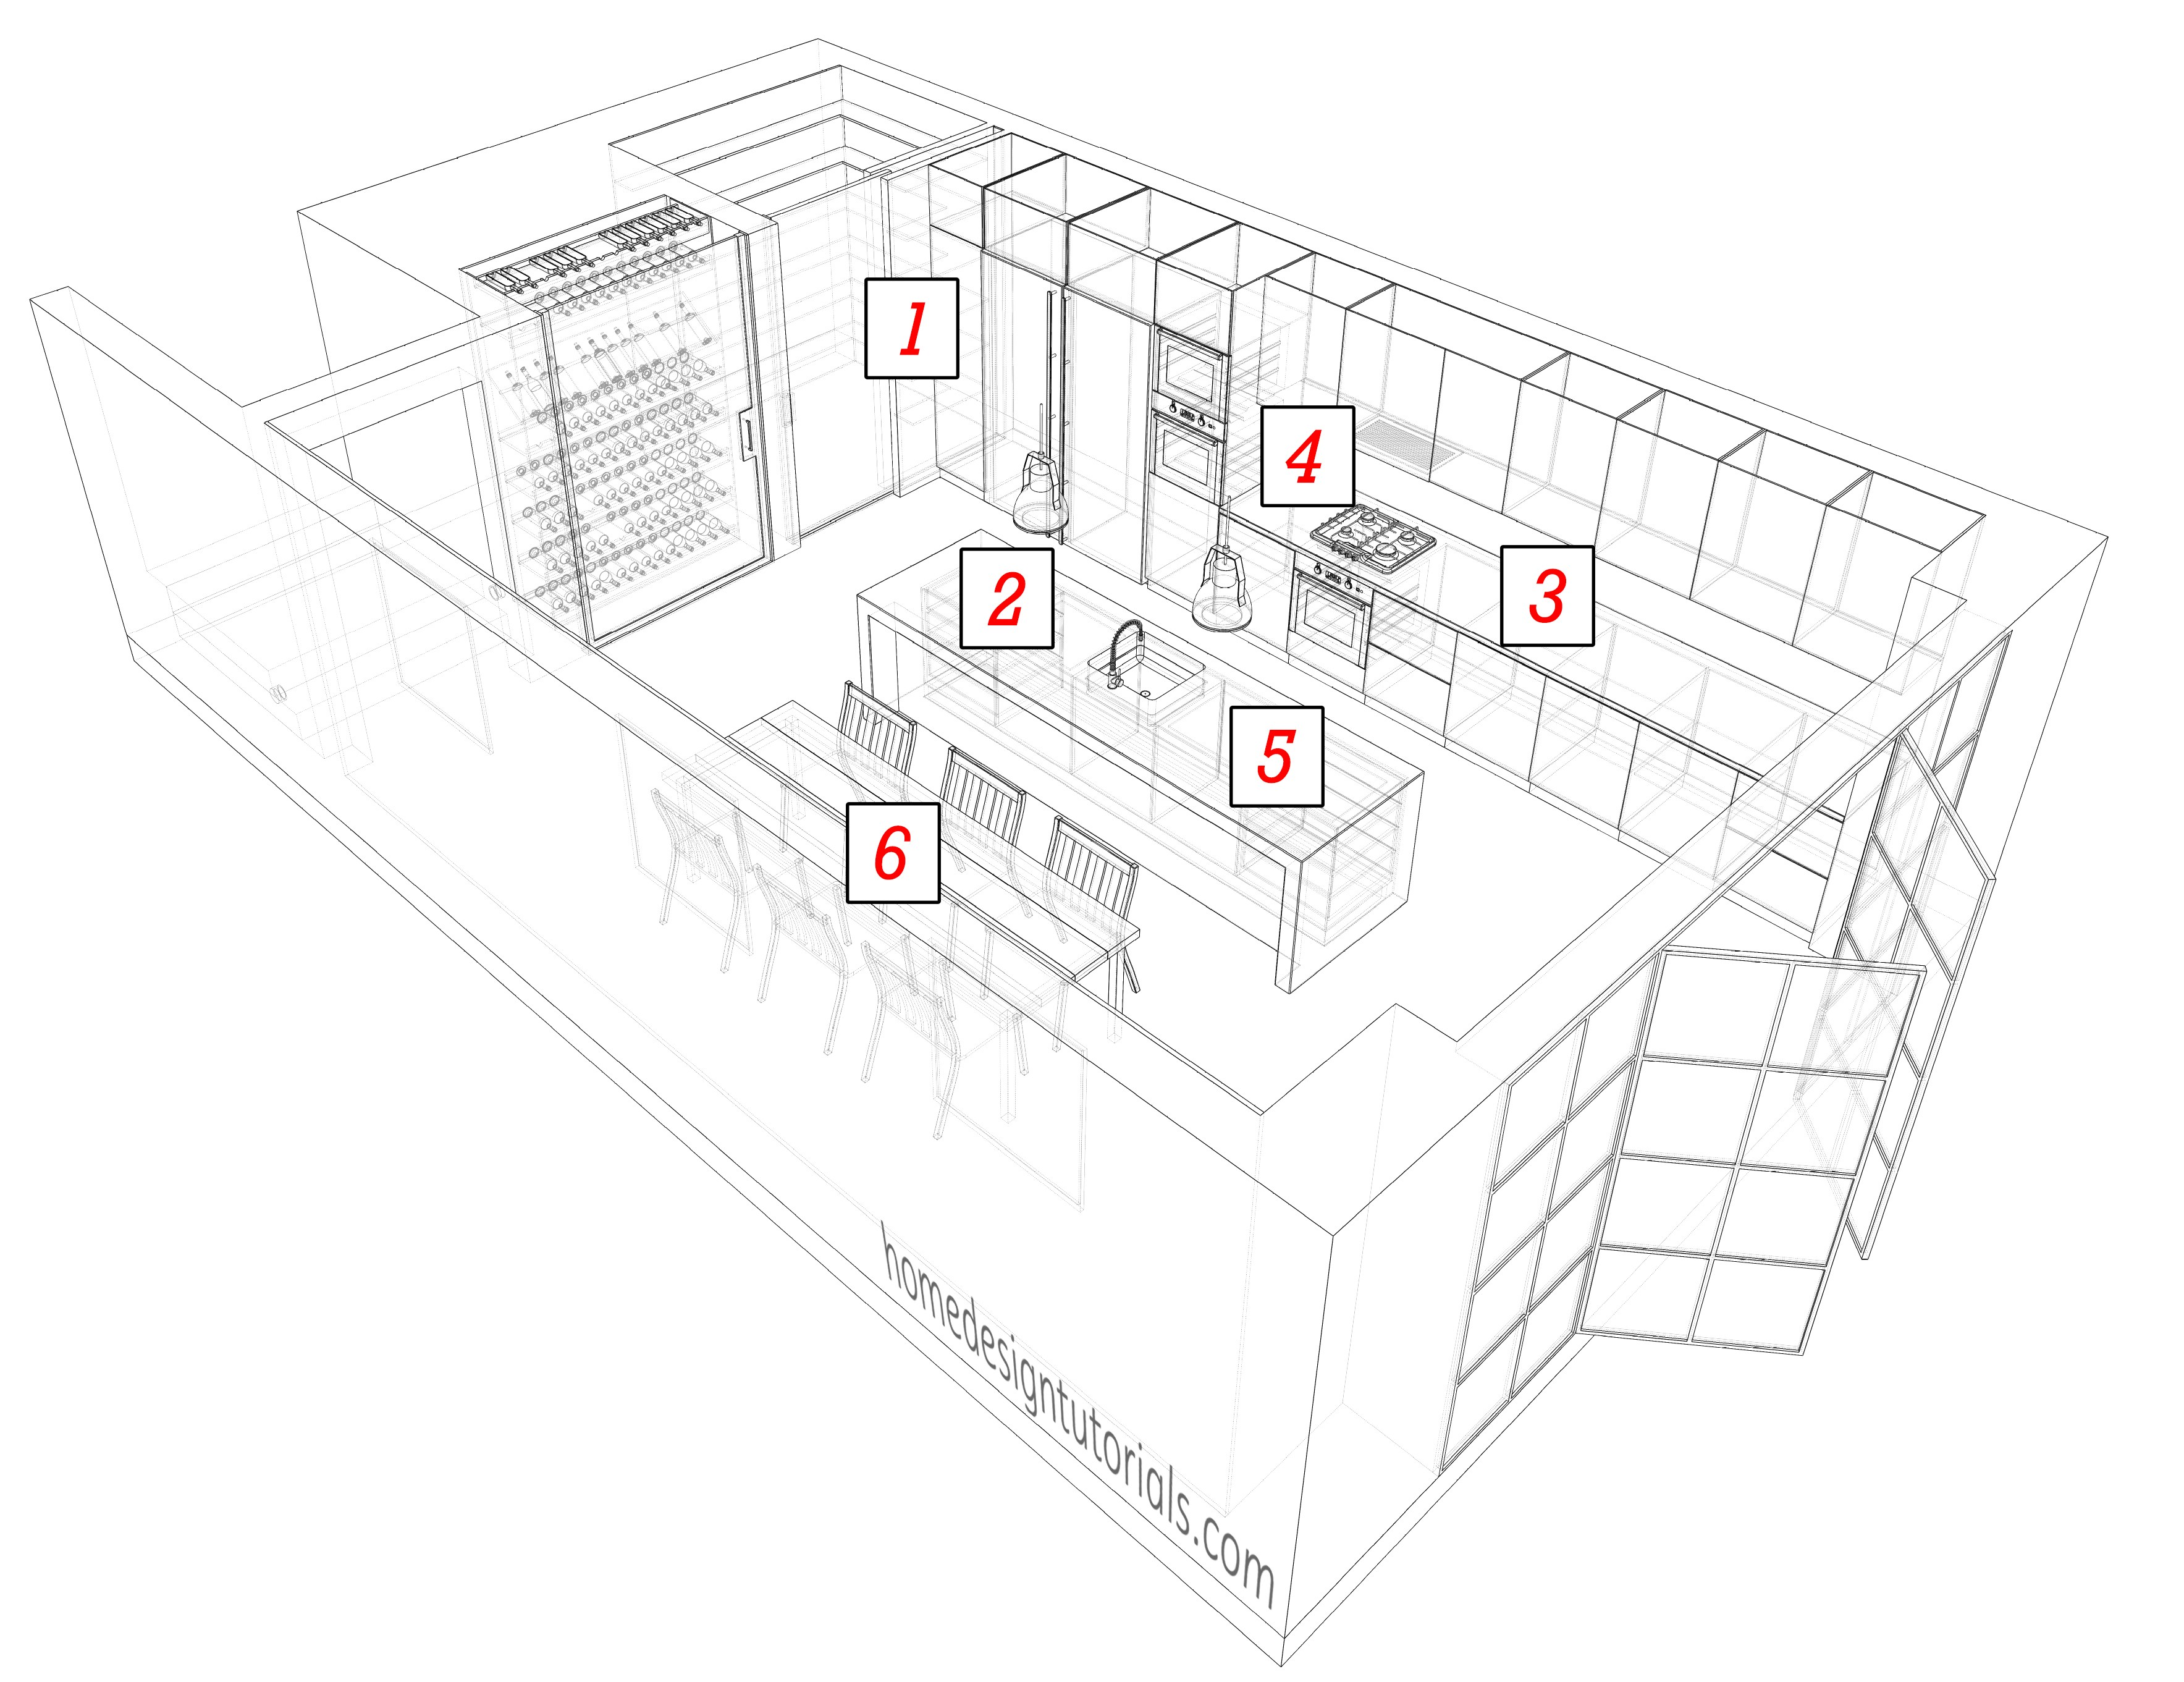 Kitchen Design Drawing at GetDrawings.com | Free for personal use ...